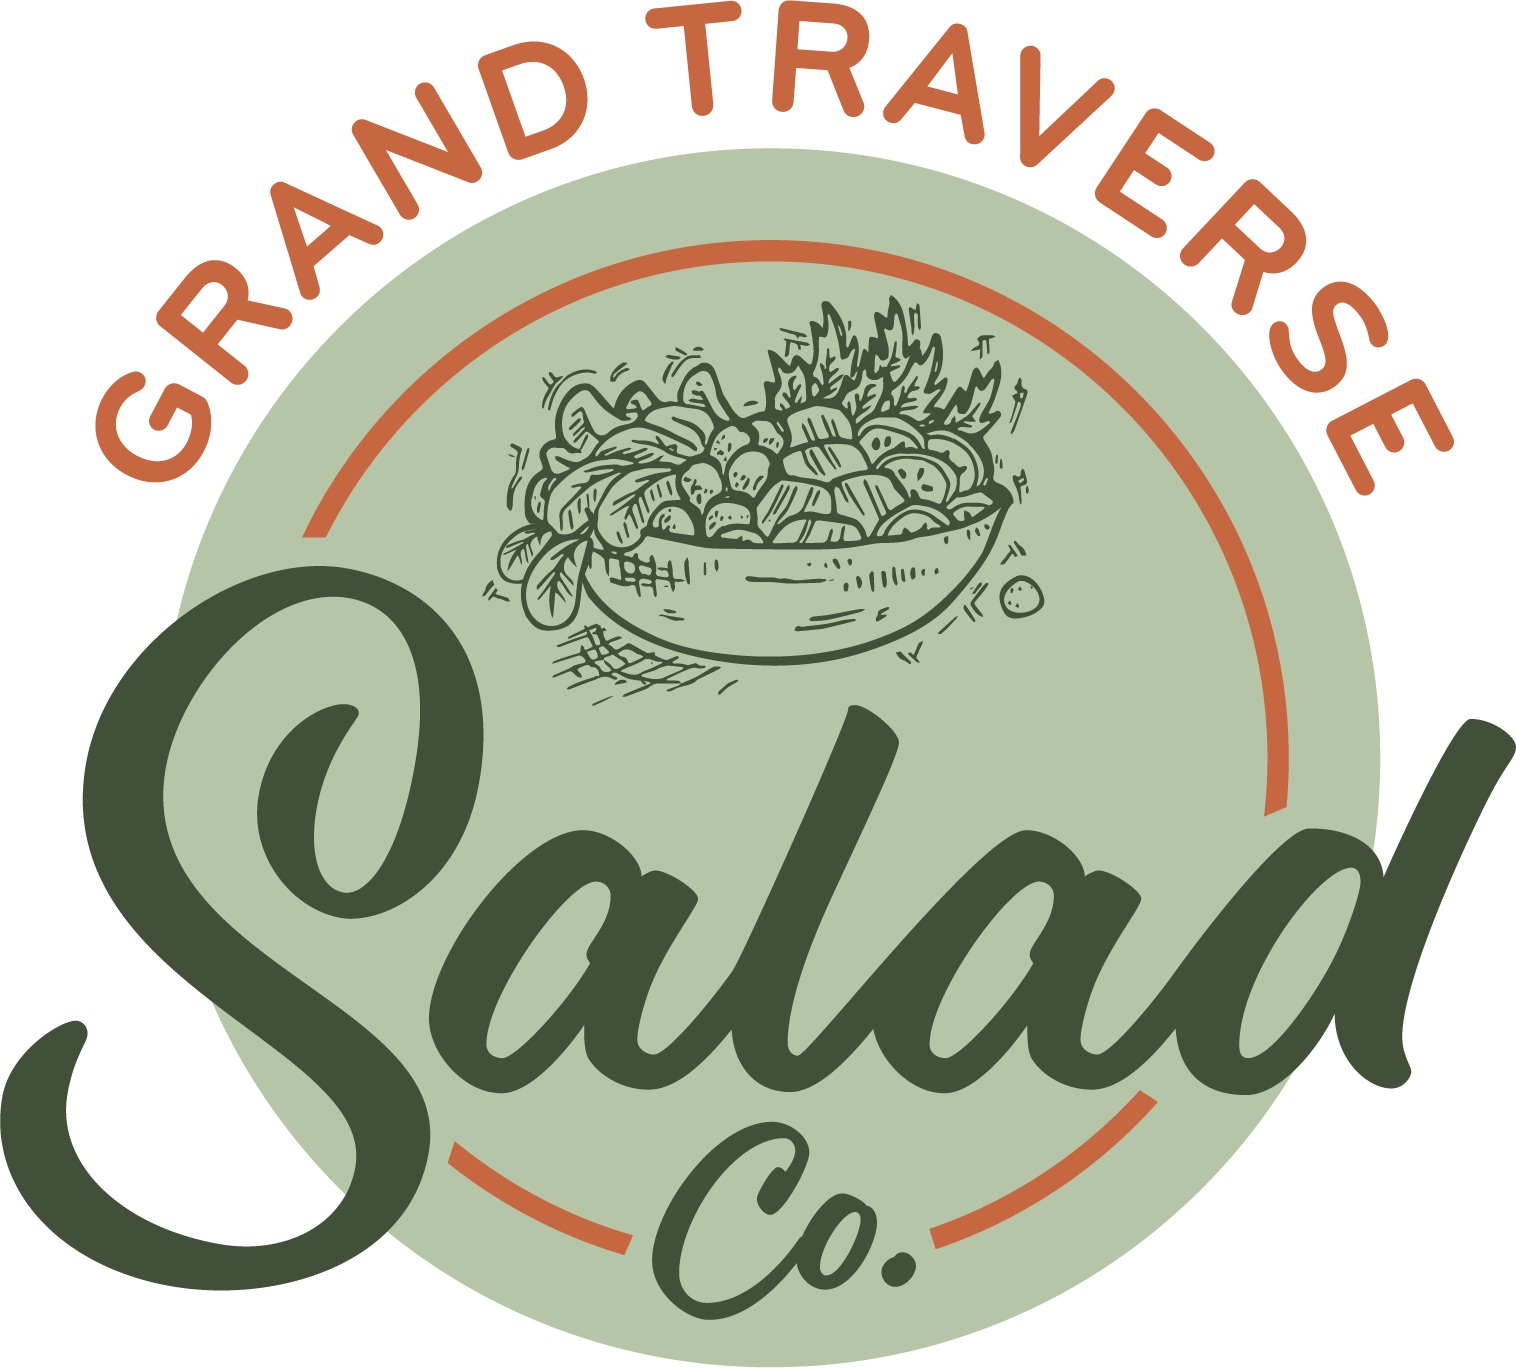 The final Grand Traverse Salad Co. logo translates easily to signage, menus, and marketing materials.